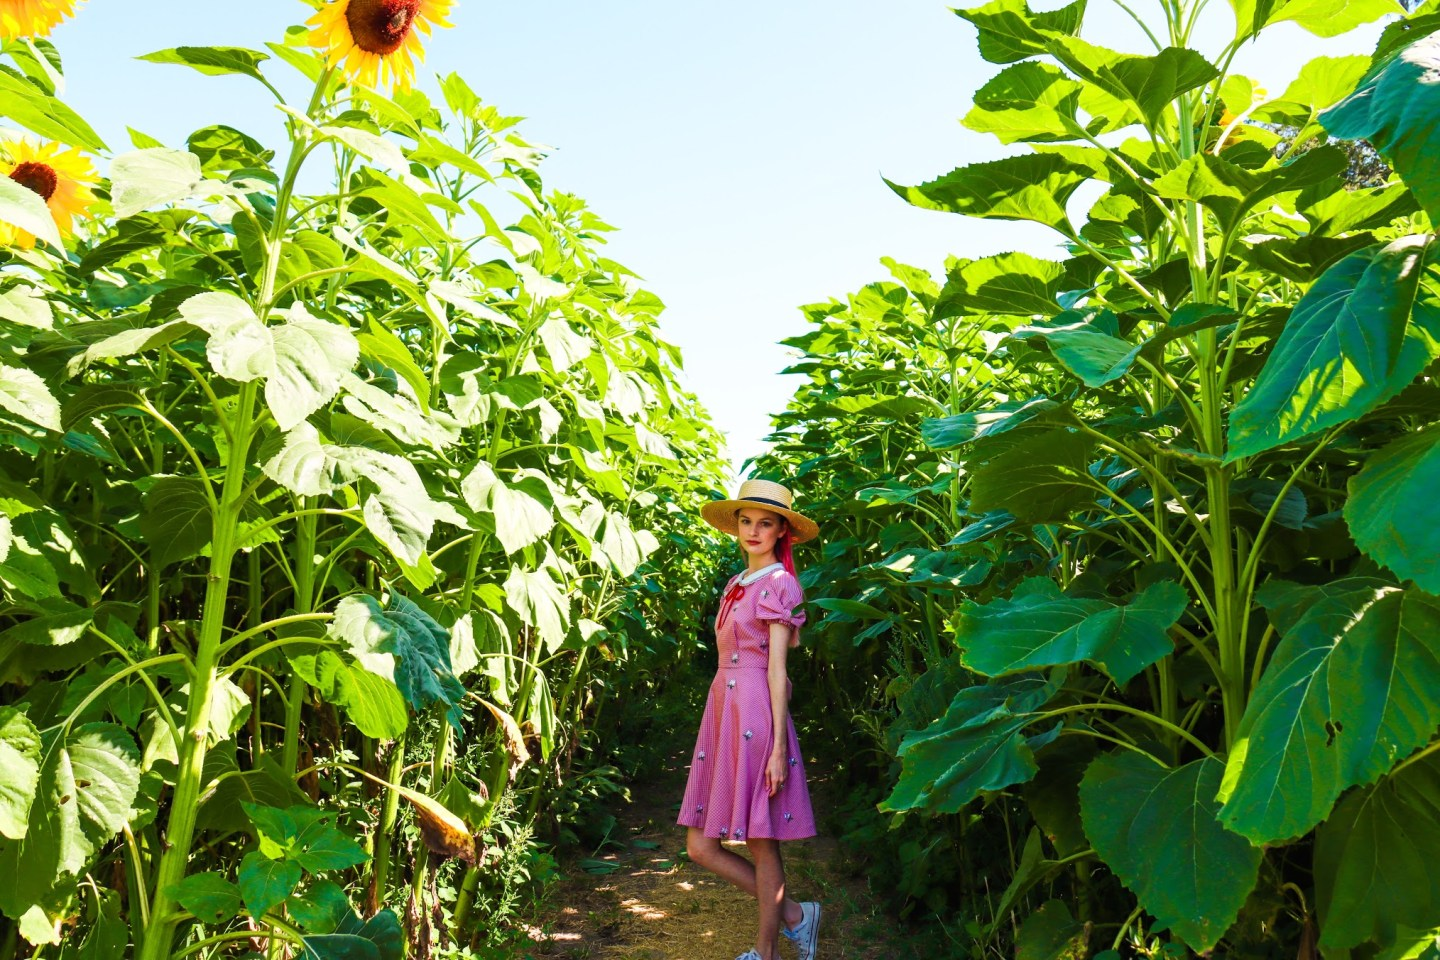 A Day Among the Sunflowers